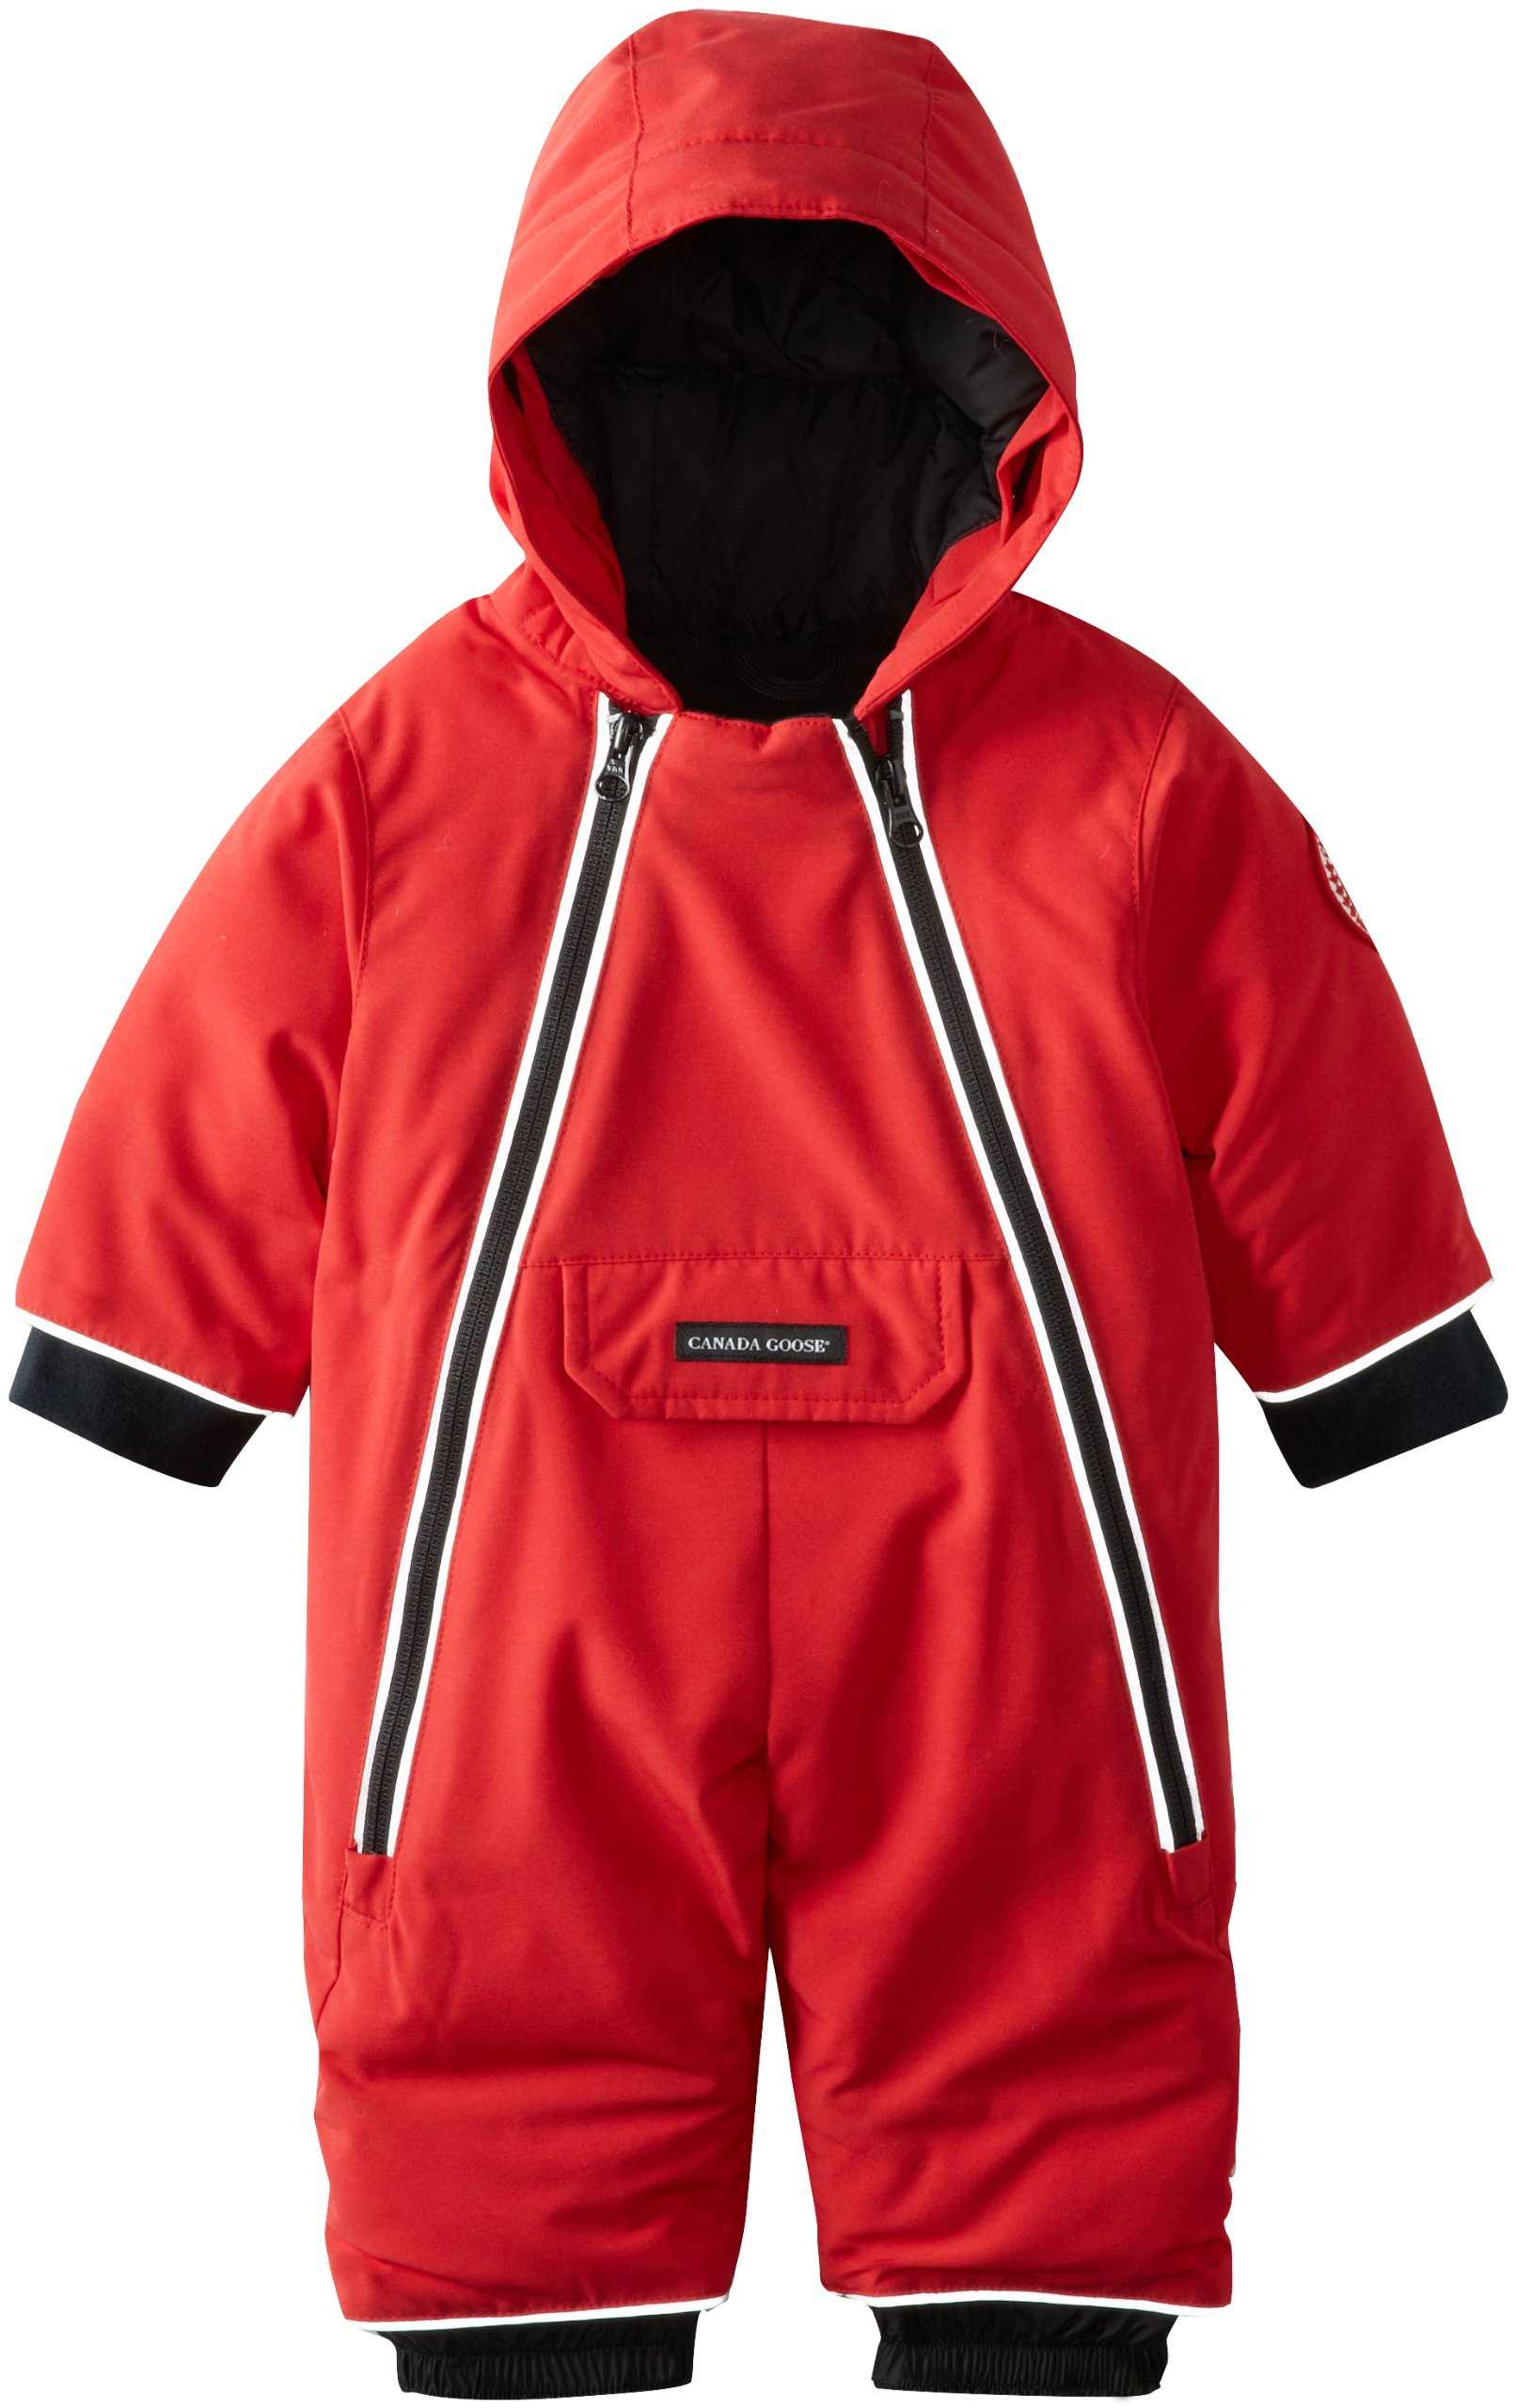 Canada Goose Baby Lamb Snowsuit, Red, 0-3 by Canada Goose (Image #2)